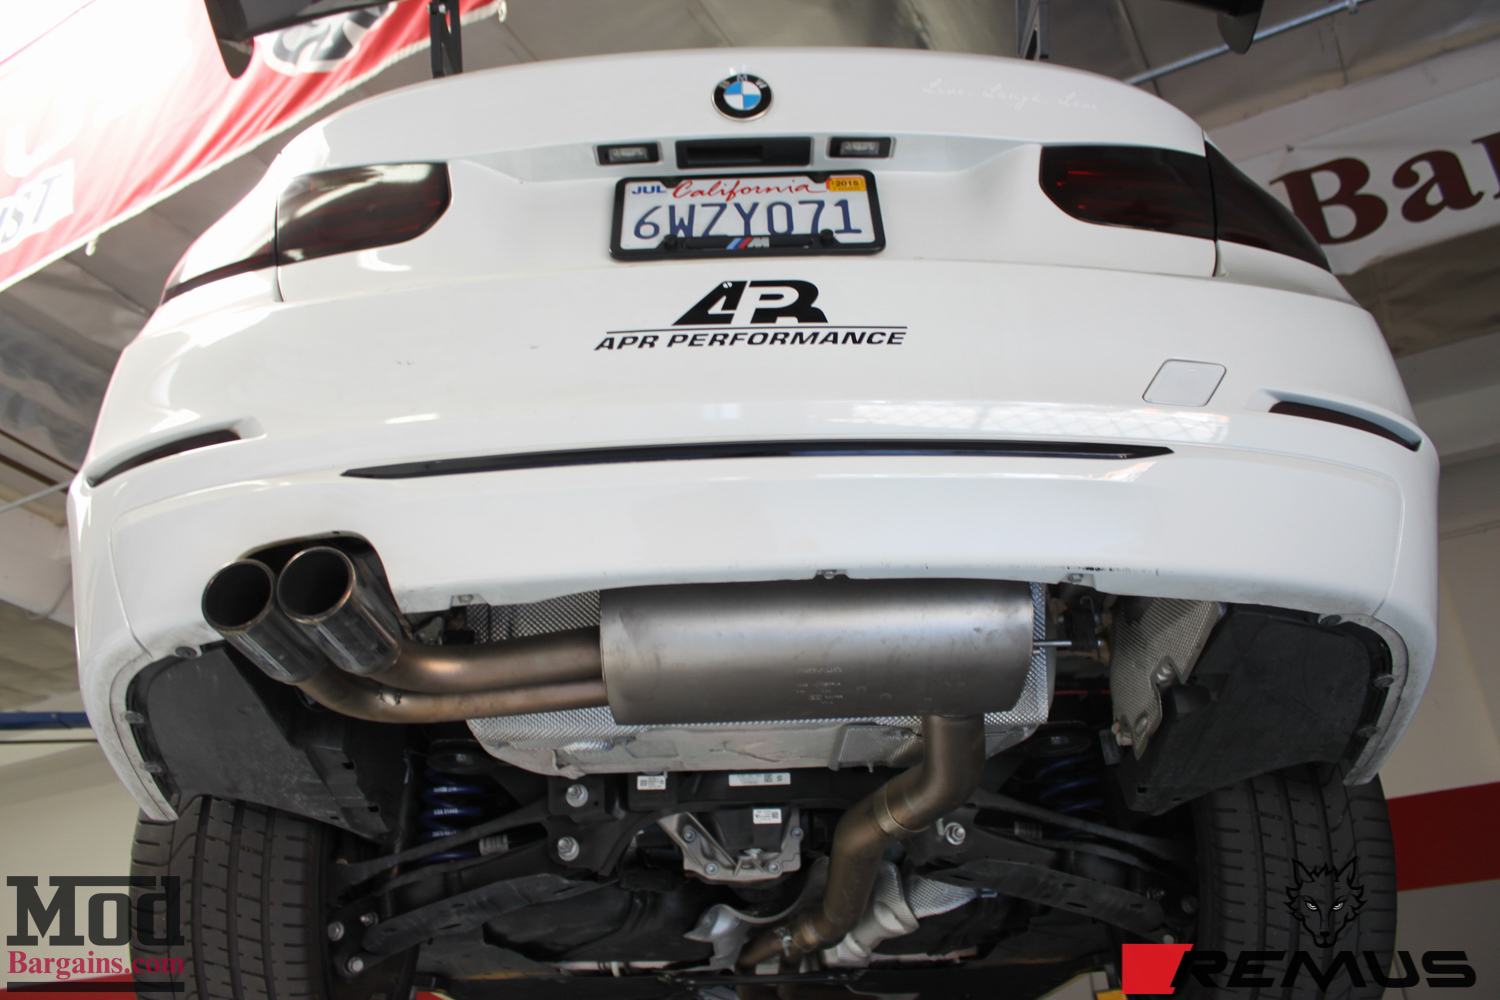 Remus Sport Exhaust System Installed on BMW F30 (2)